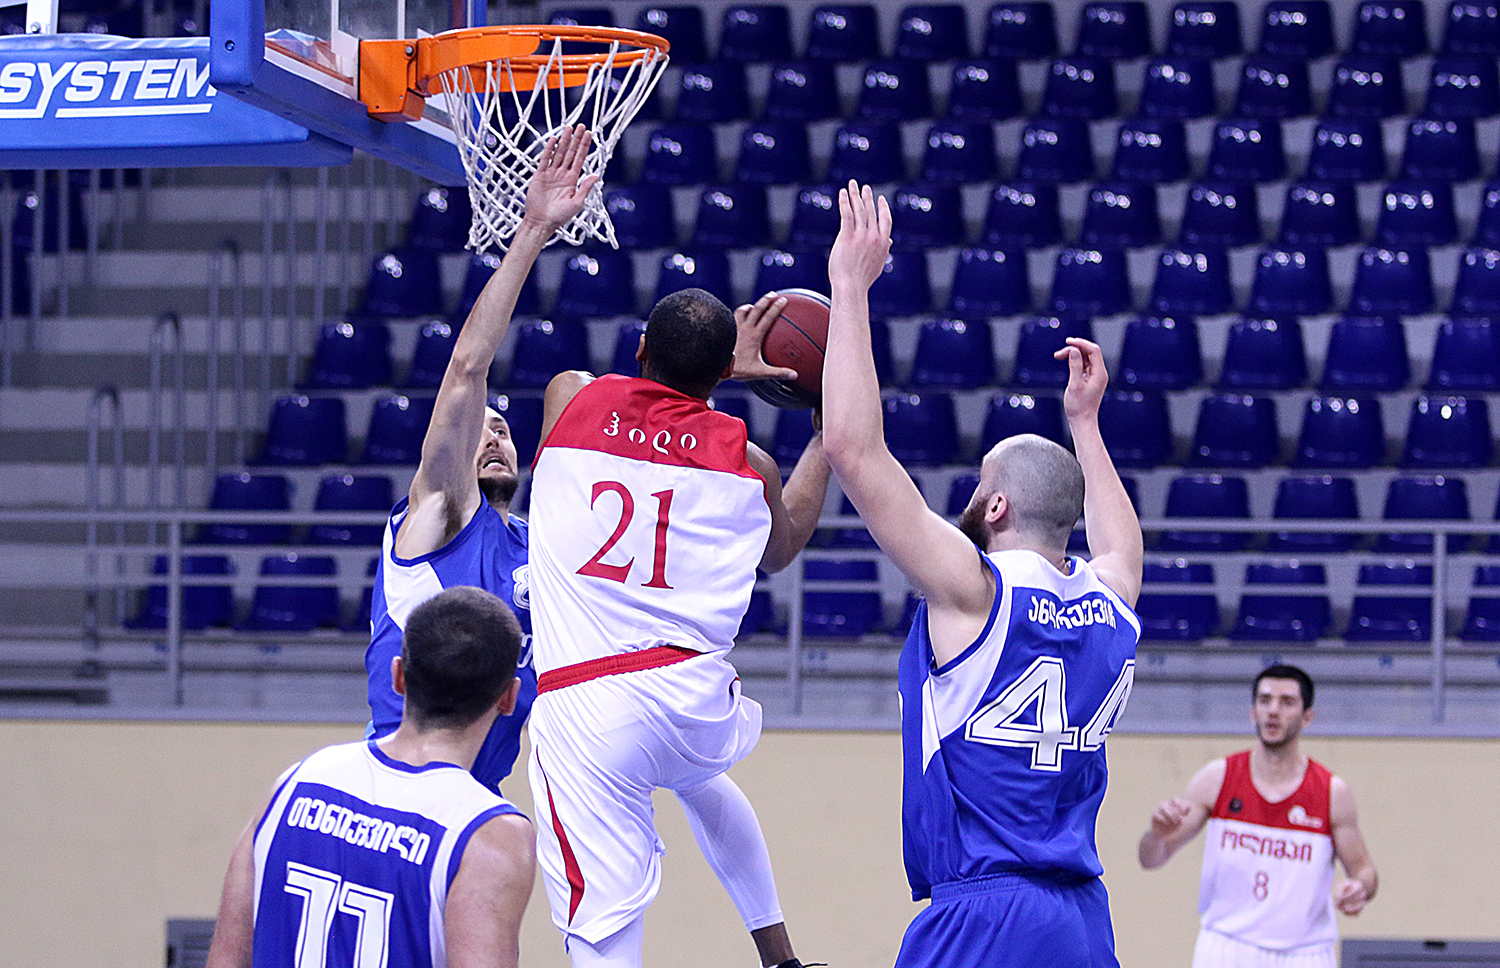 Olimpi defeated Batumi with 3-points difference